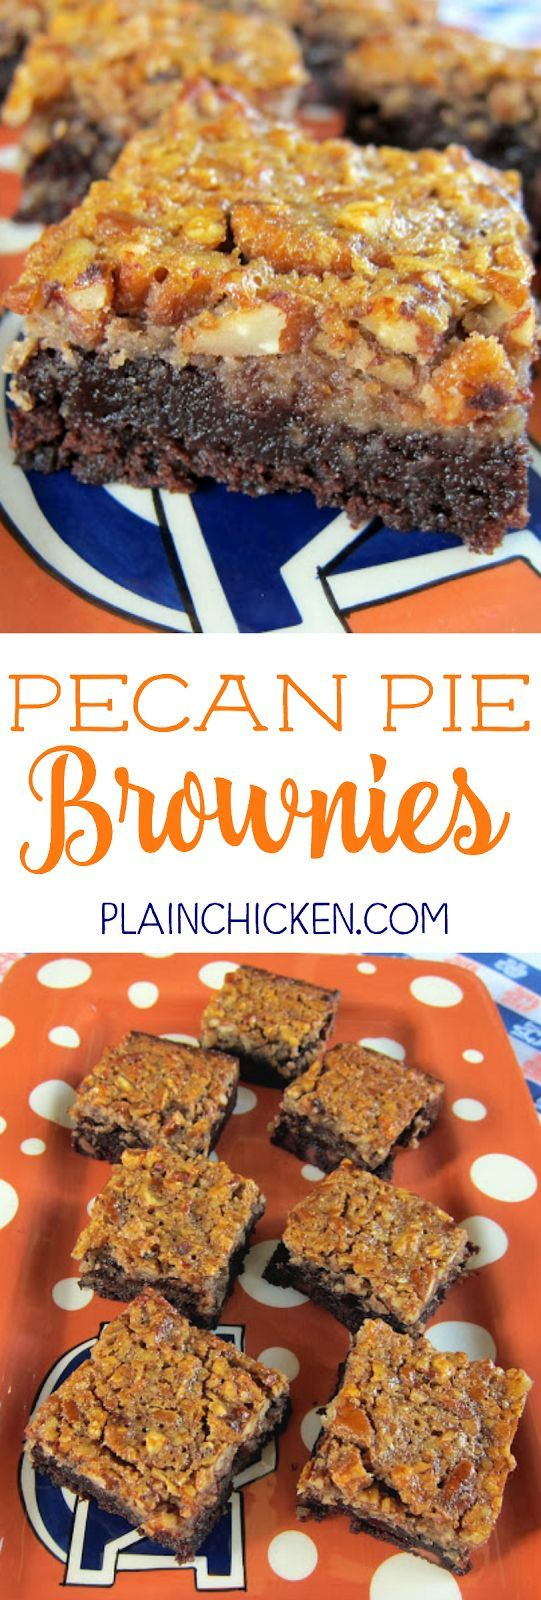 Pecan Pie Brownies - brownies topped with pecan pie filling. Brownie mix, corn syrup, eggs, vanilla, pecans. SO good! These are always the first thing to go!!